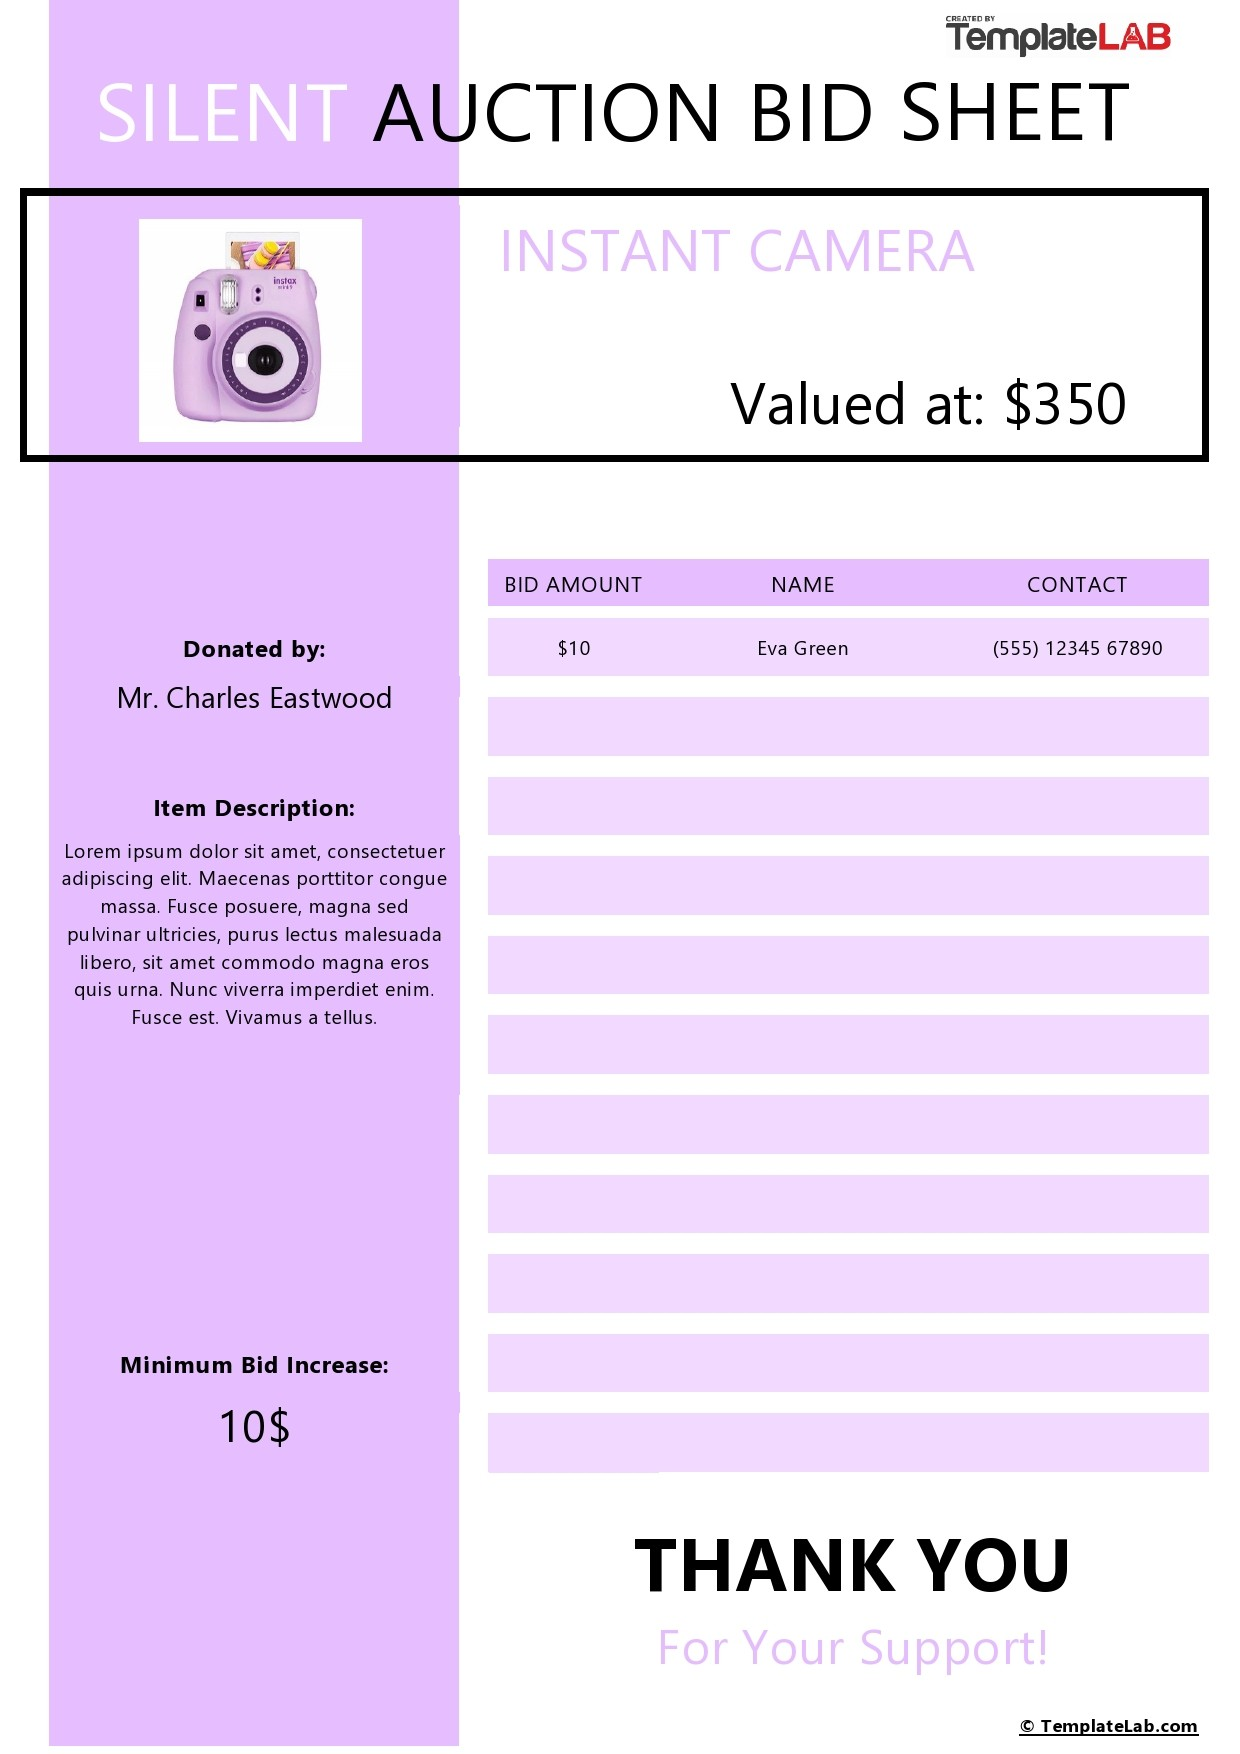 Free Silent Auction Bid Sheet Template 02 - TemplateLab.com